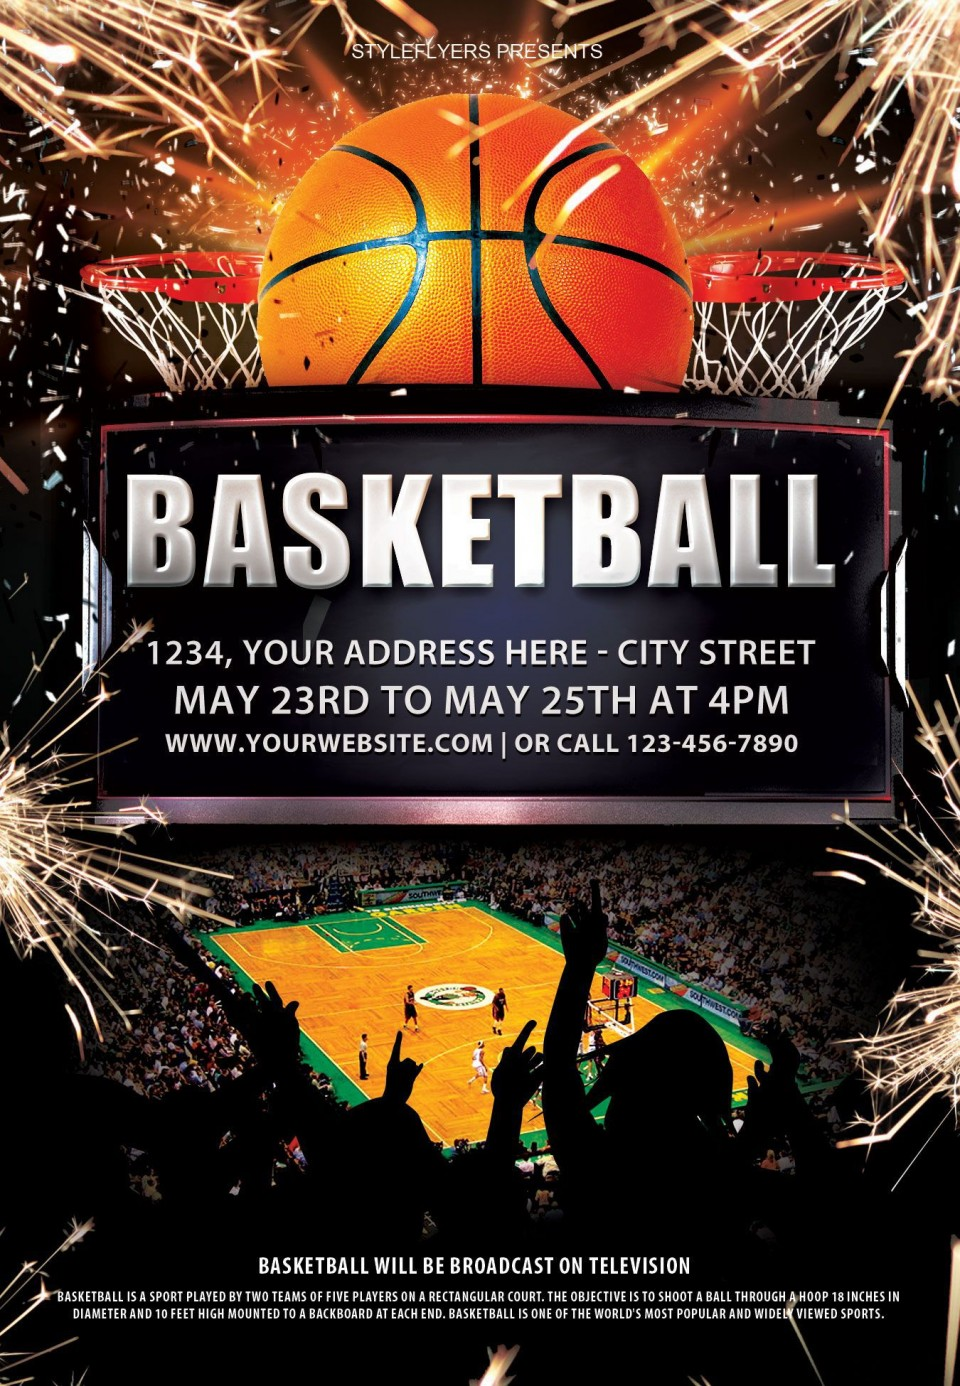 003 Beautiful Basketball Flyer Template Free Photo  Brochure Tryout Camp960